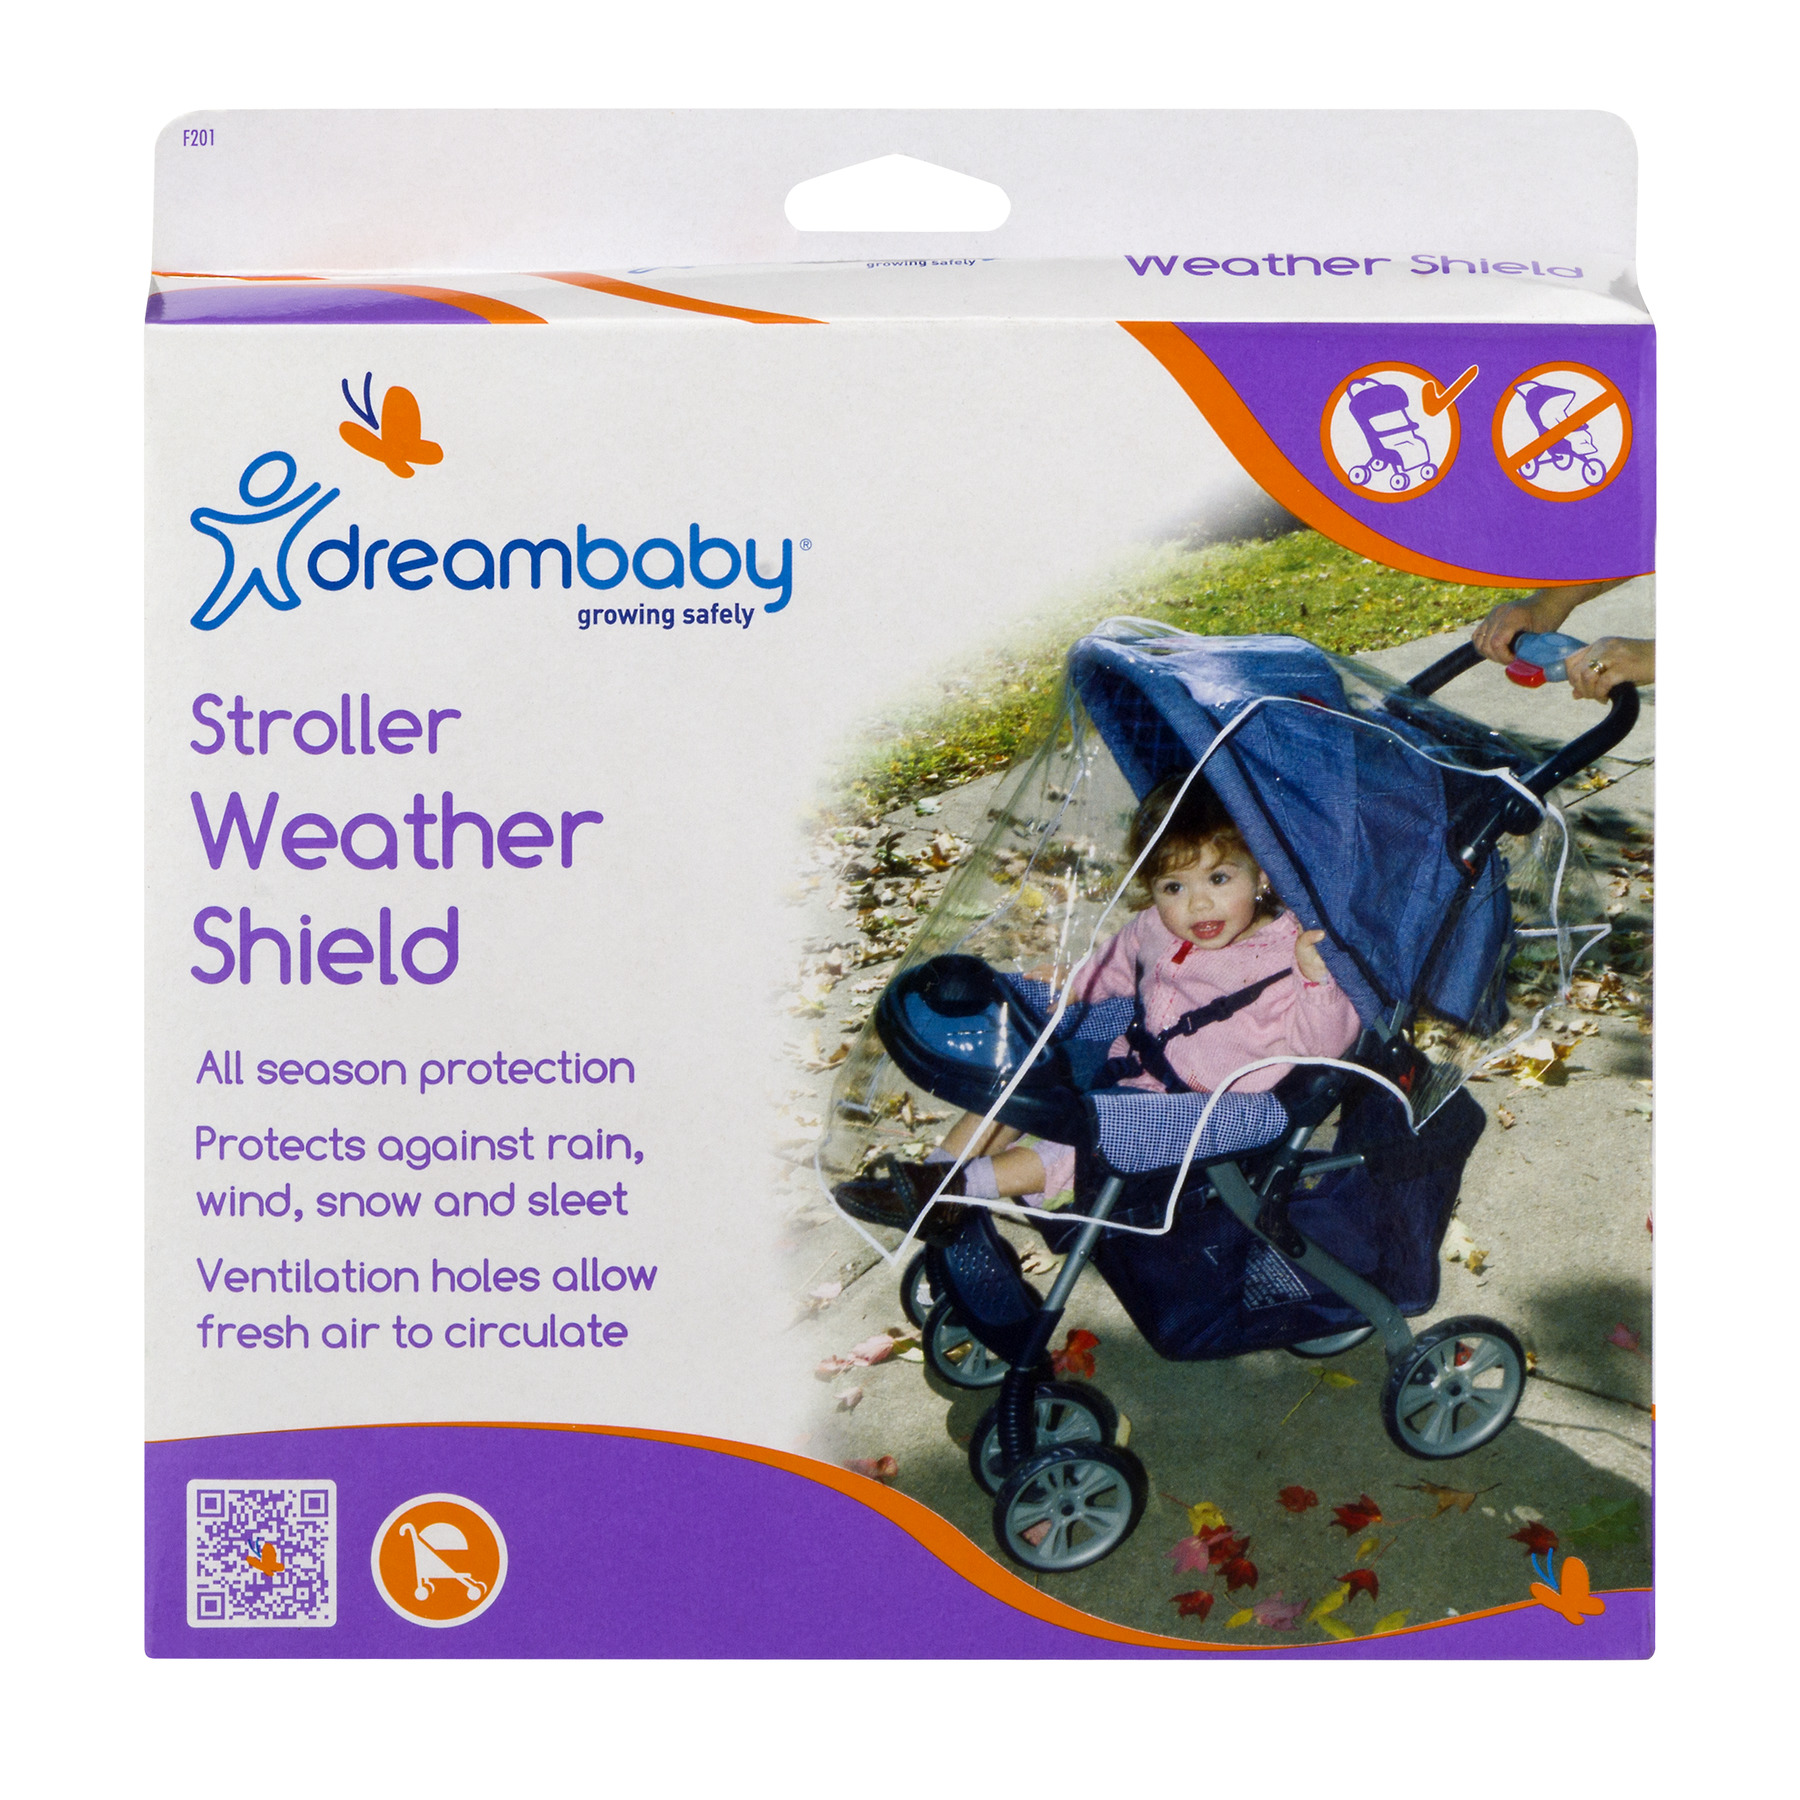 Dreambaby Stroller Weather Shield, 1.0 CT